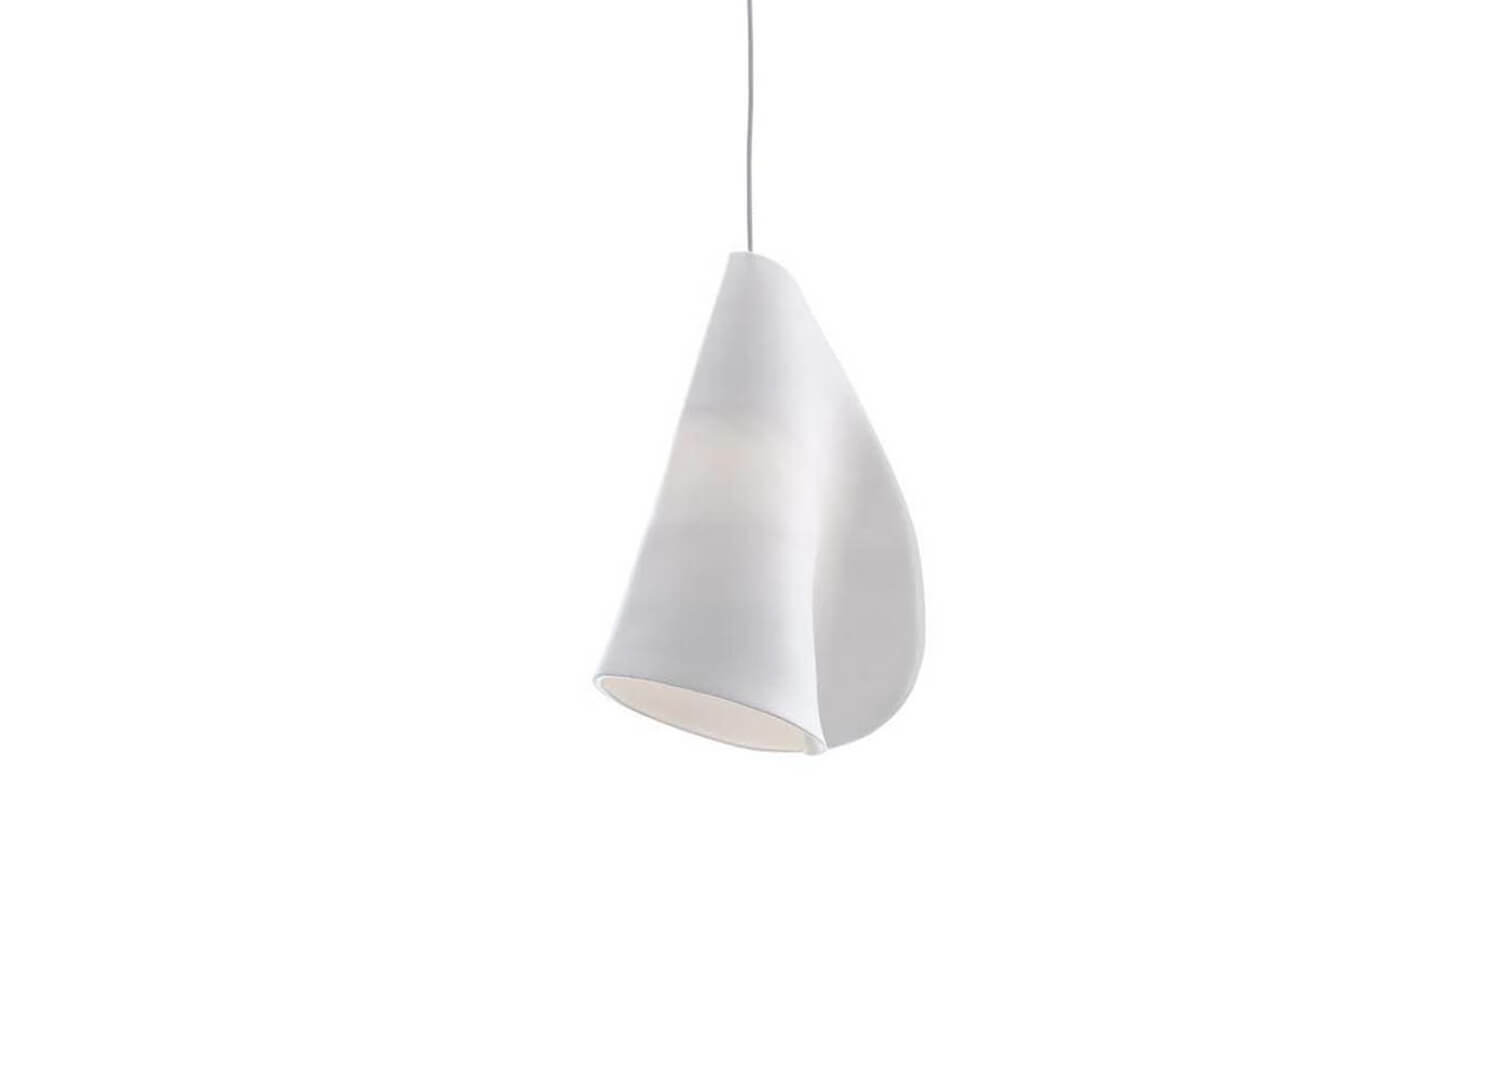 est living design directory 21.1 pendant light poliform